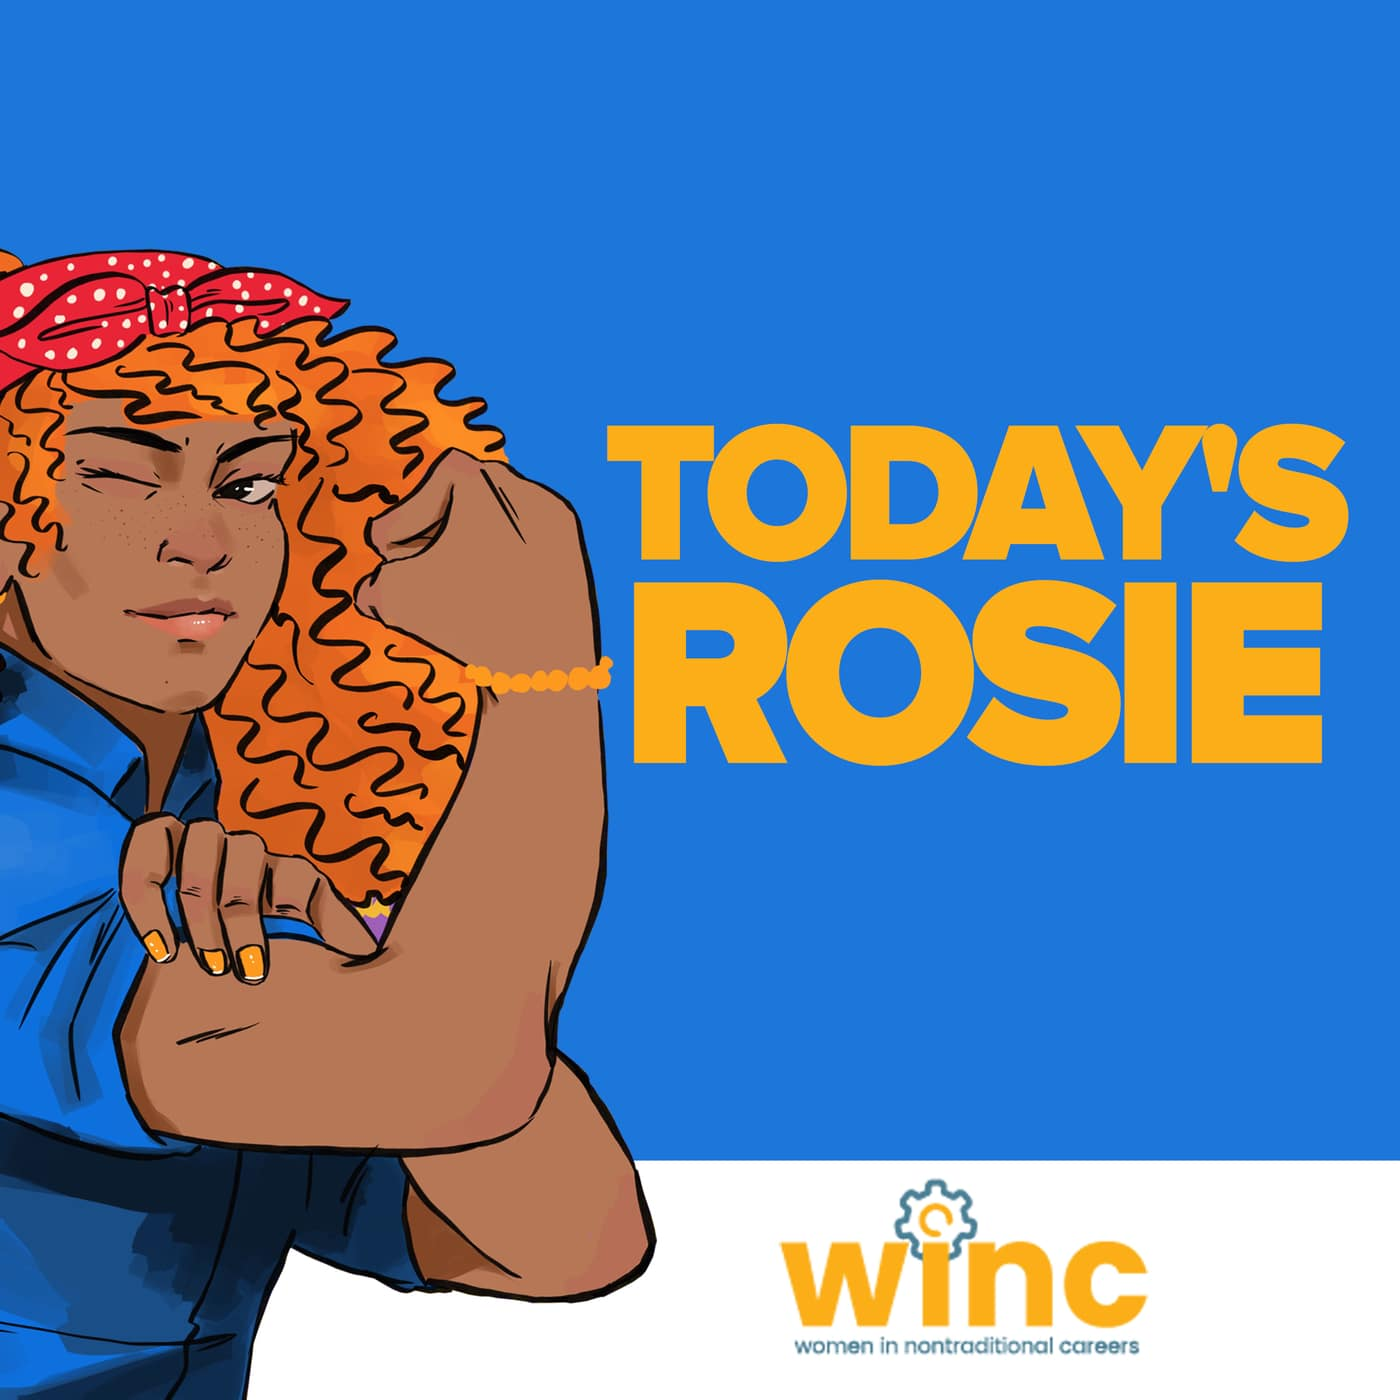 Today's Rosie